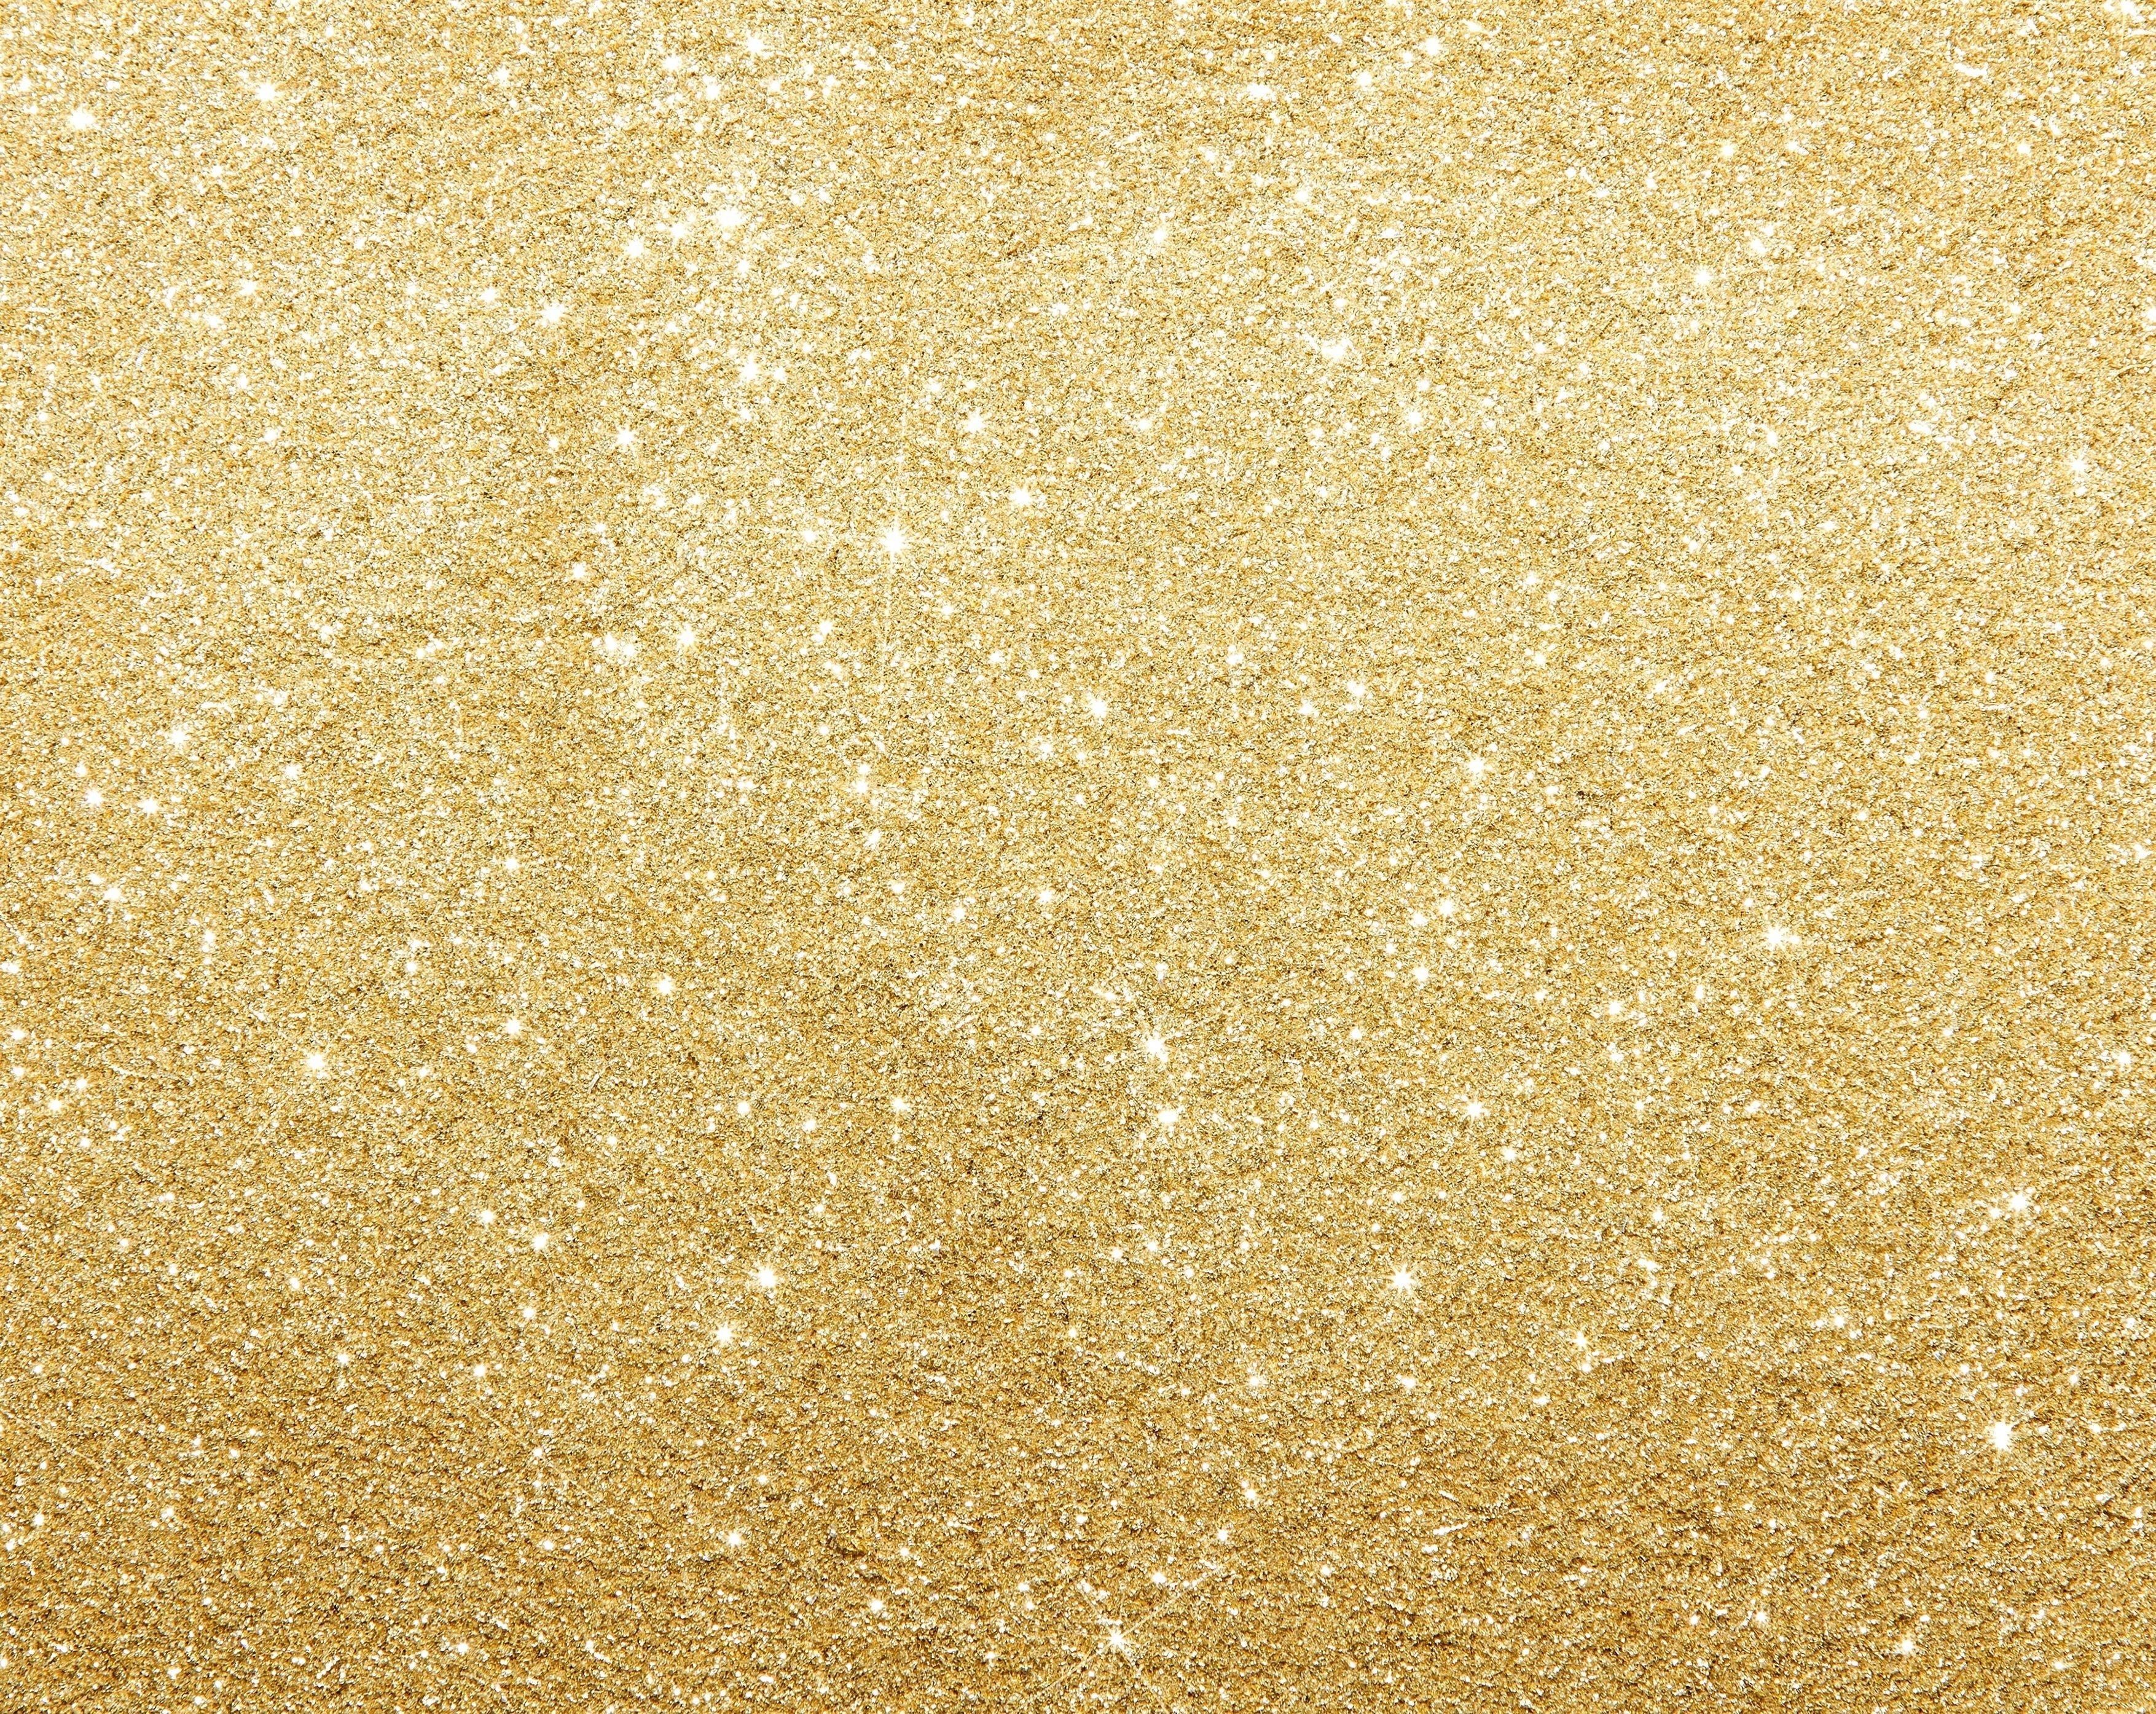 sparkle-background-gold 3,509×2,789 pixels | creative